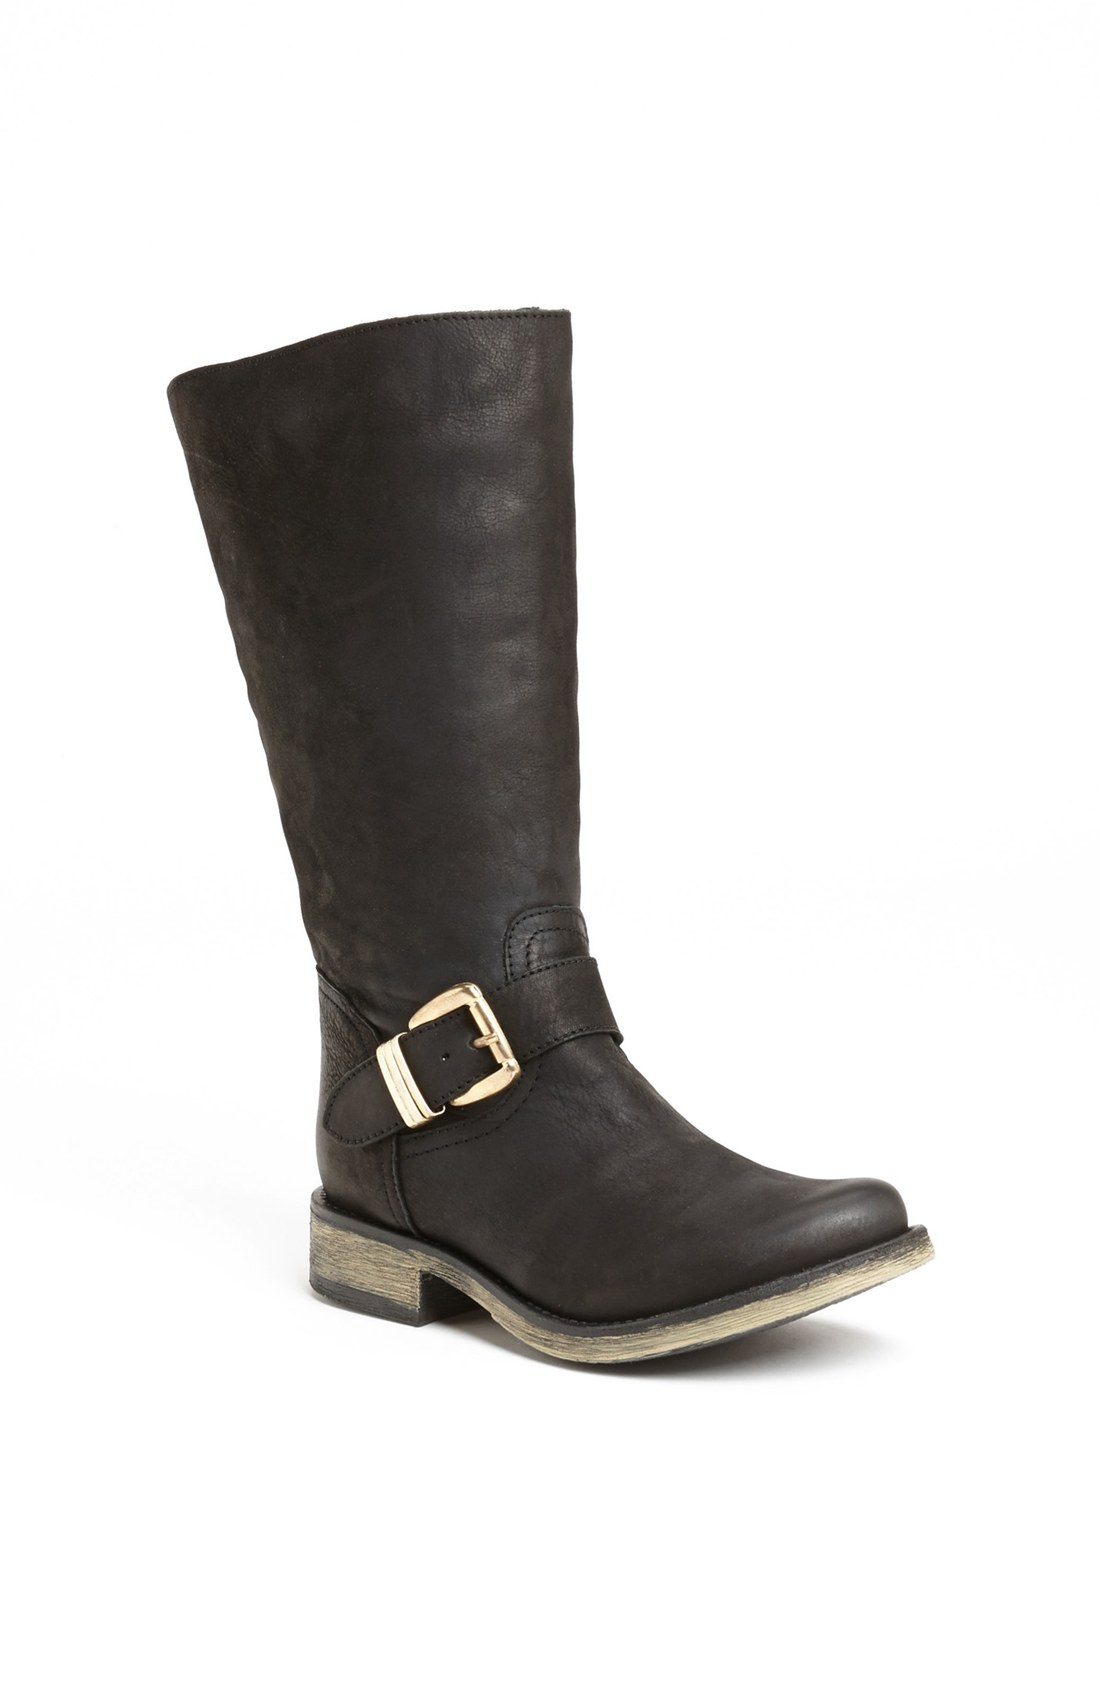 1c37bc3adc85 Steve Madden Ugg Style Boots